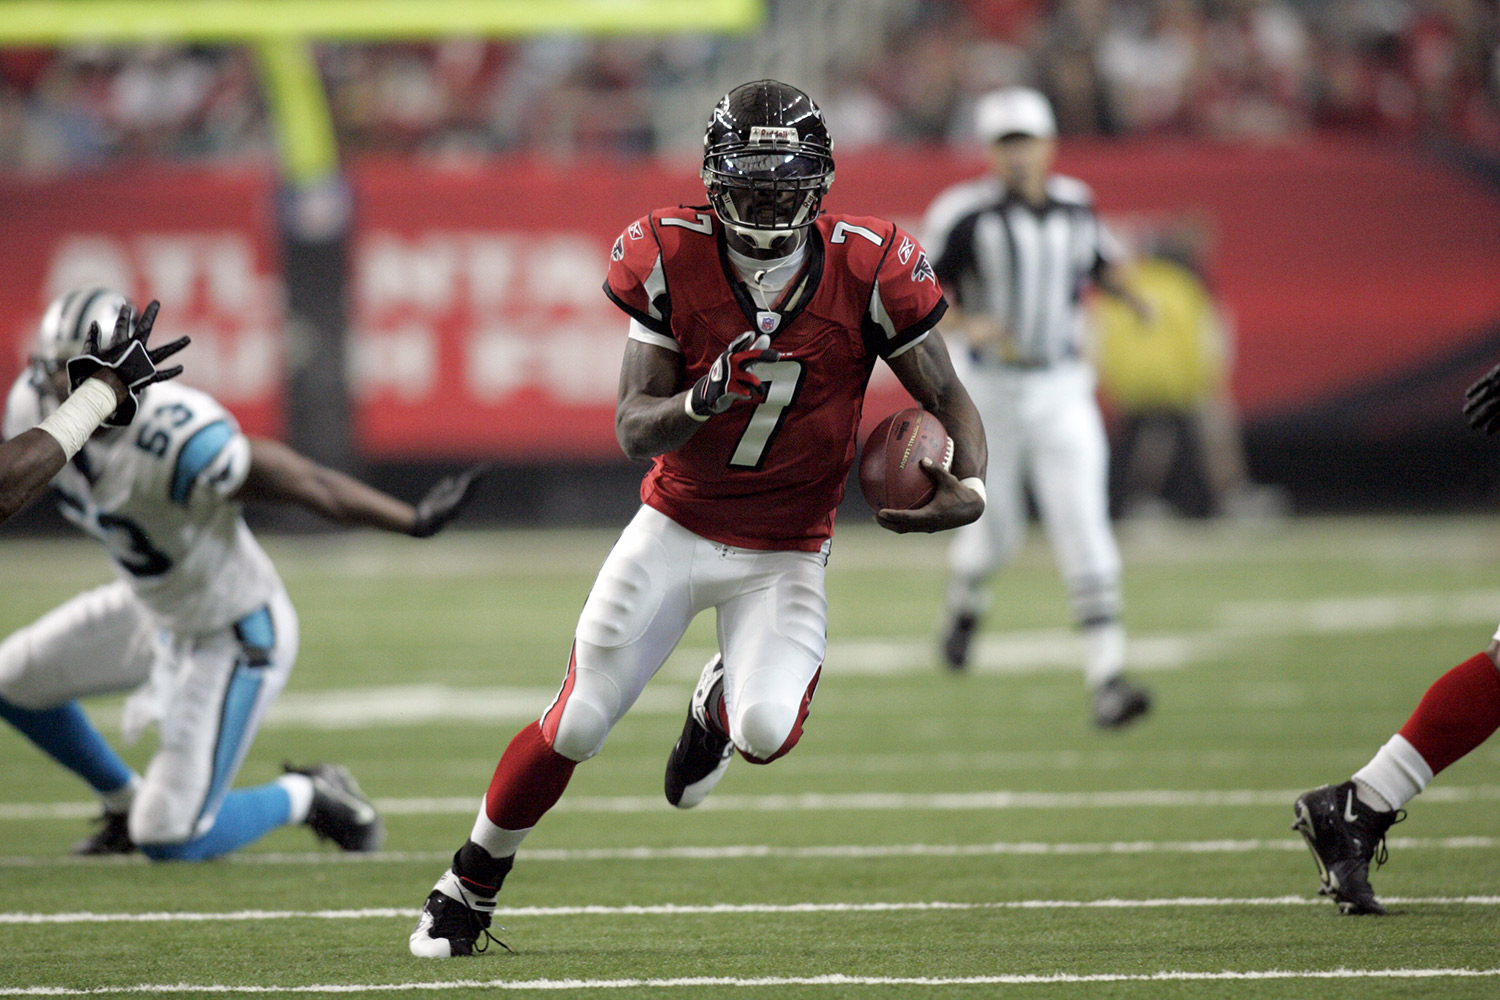 Widely regarded as one of the most versatile quarterbacks in the NFL, Vick was drafted with the first overall pick in the 2001 NFL Draft by the Atlanta Falcons. Since then, he's been selected to four Pro-Bowls, spent 23 months in federal prison and has recently resurrected his career with the Philadelphia Eagles. (*Vick's time was calculated before the NFL implemented electronic timing to improve accuracy.)